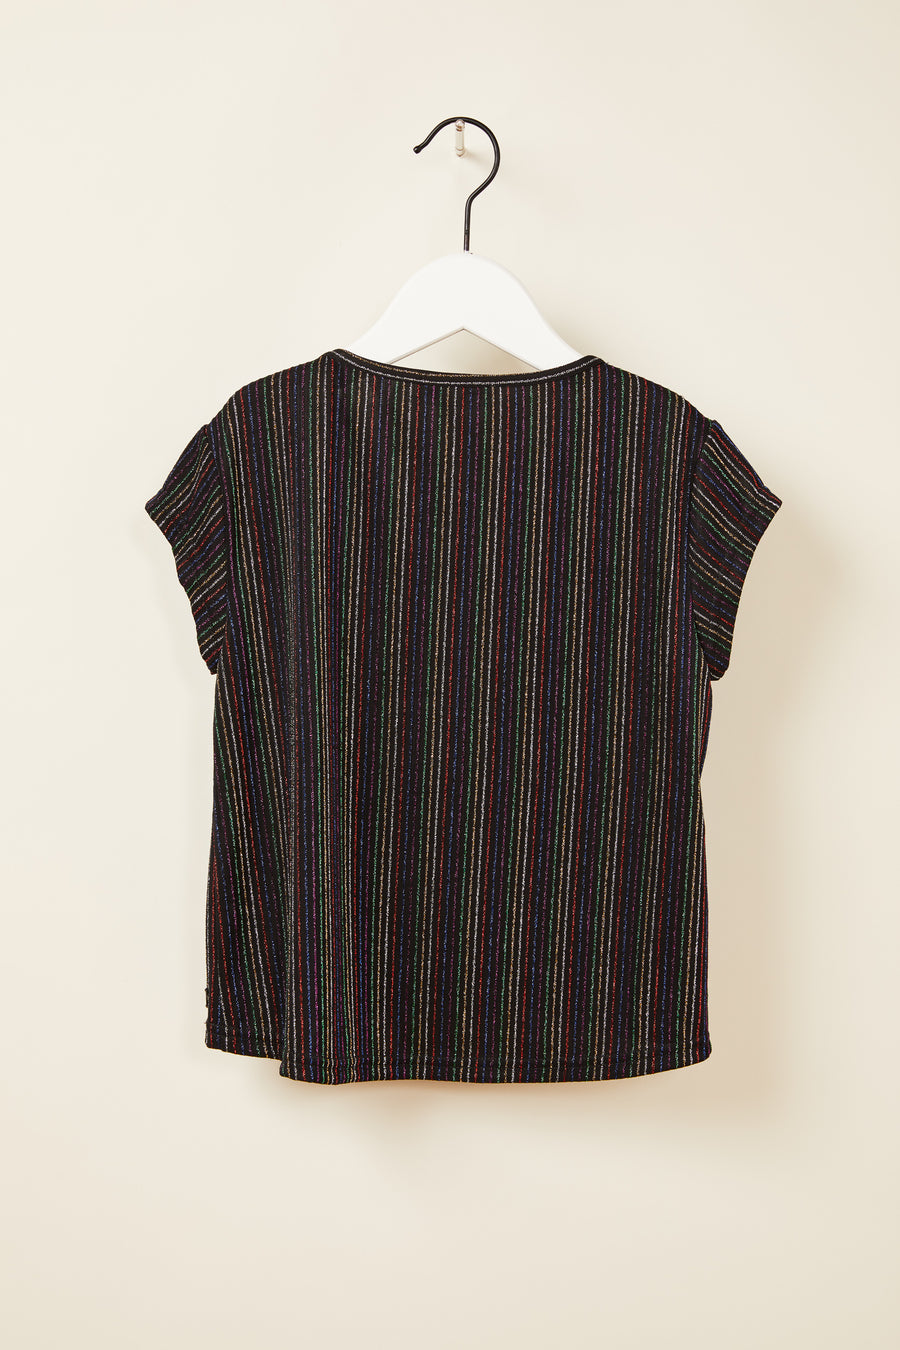 Farniente Striped Tee by Sonia Rykiel